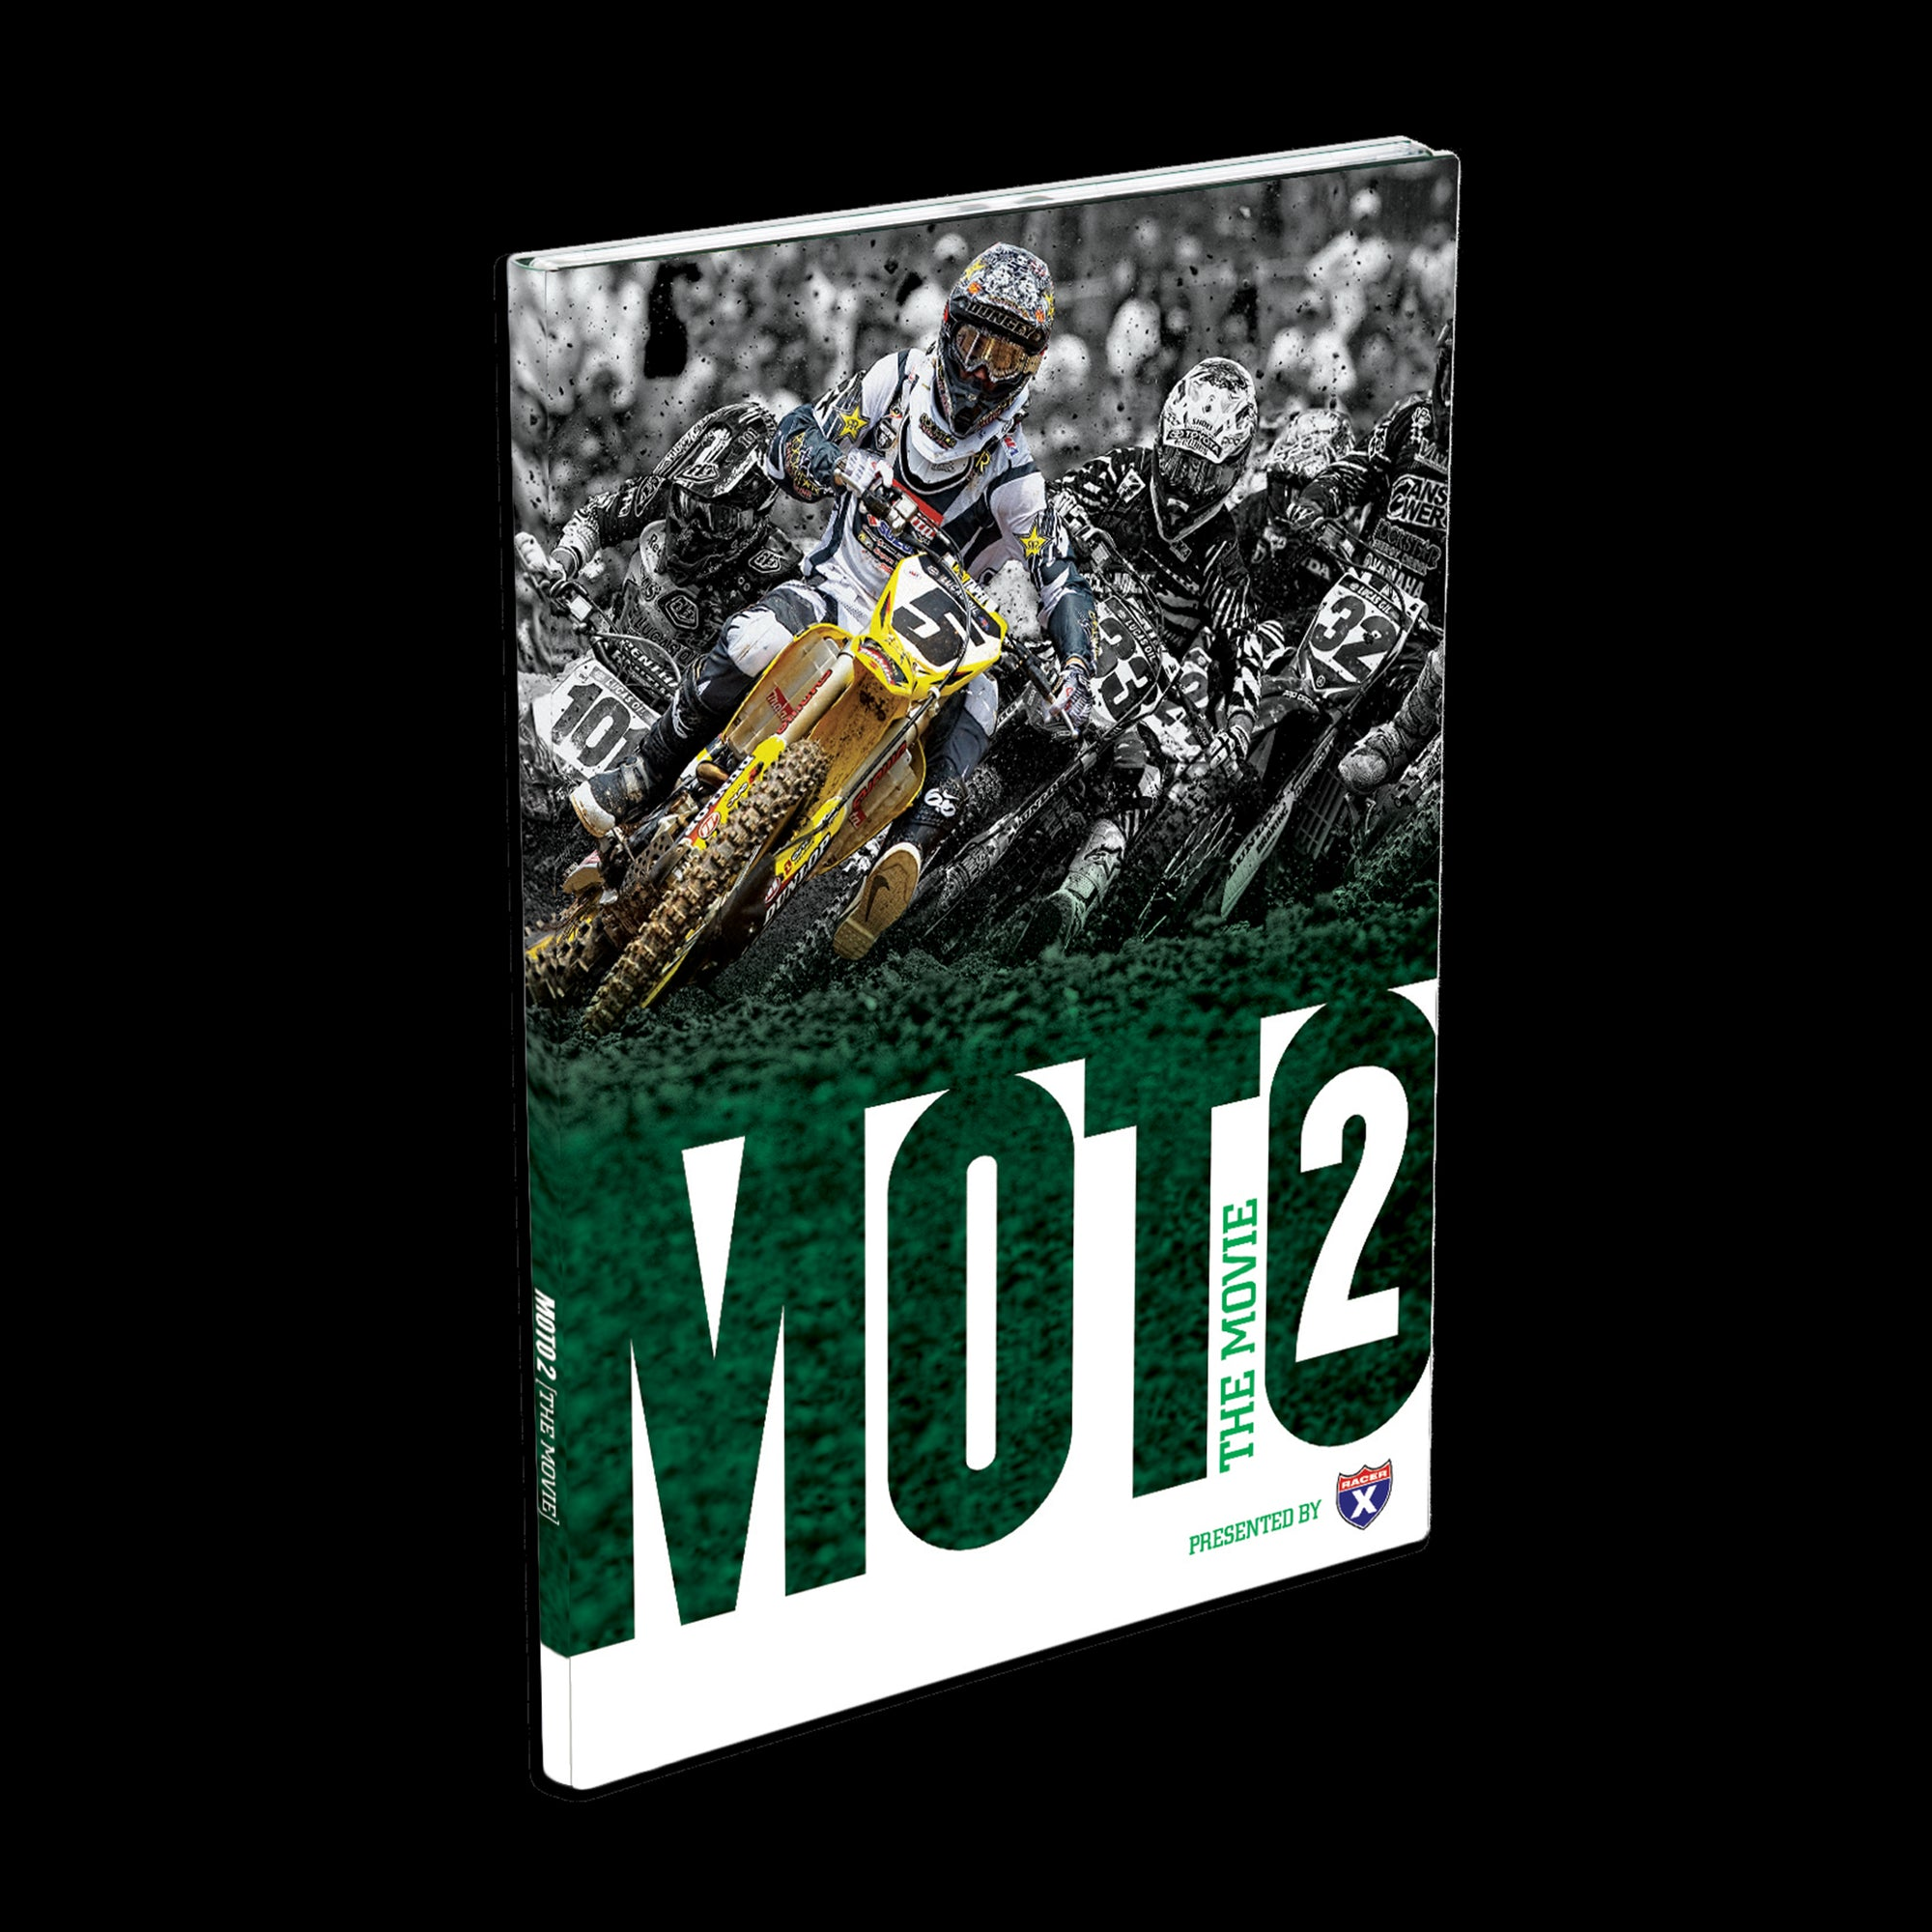 MOTO 2 The Movie